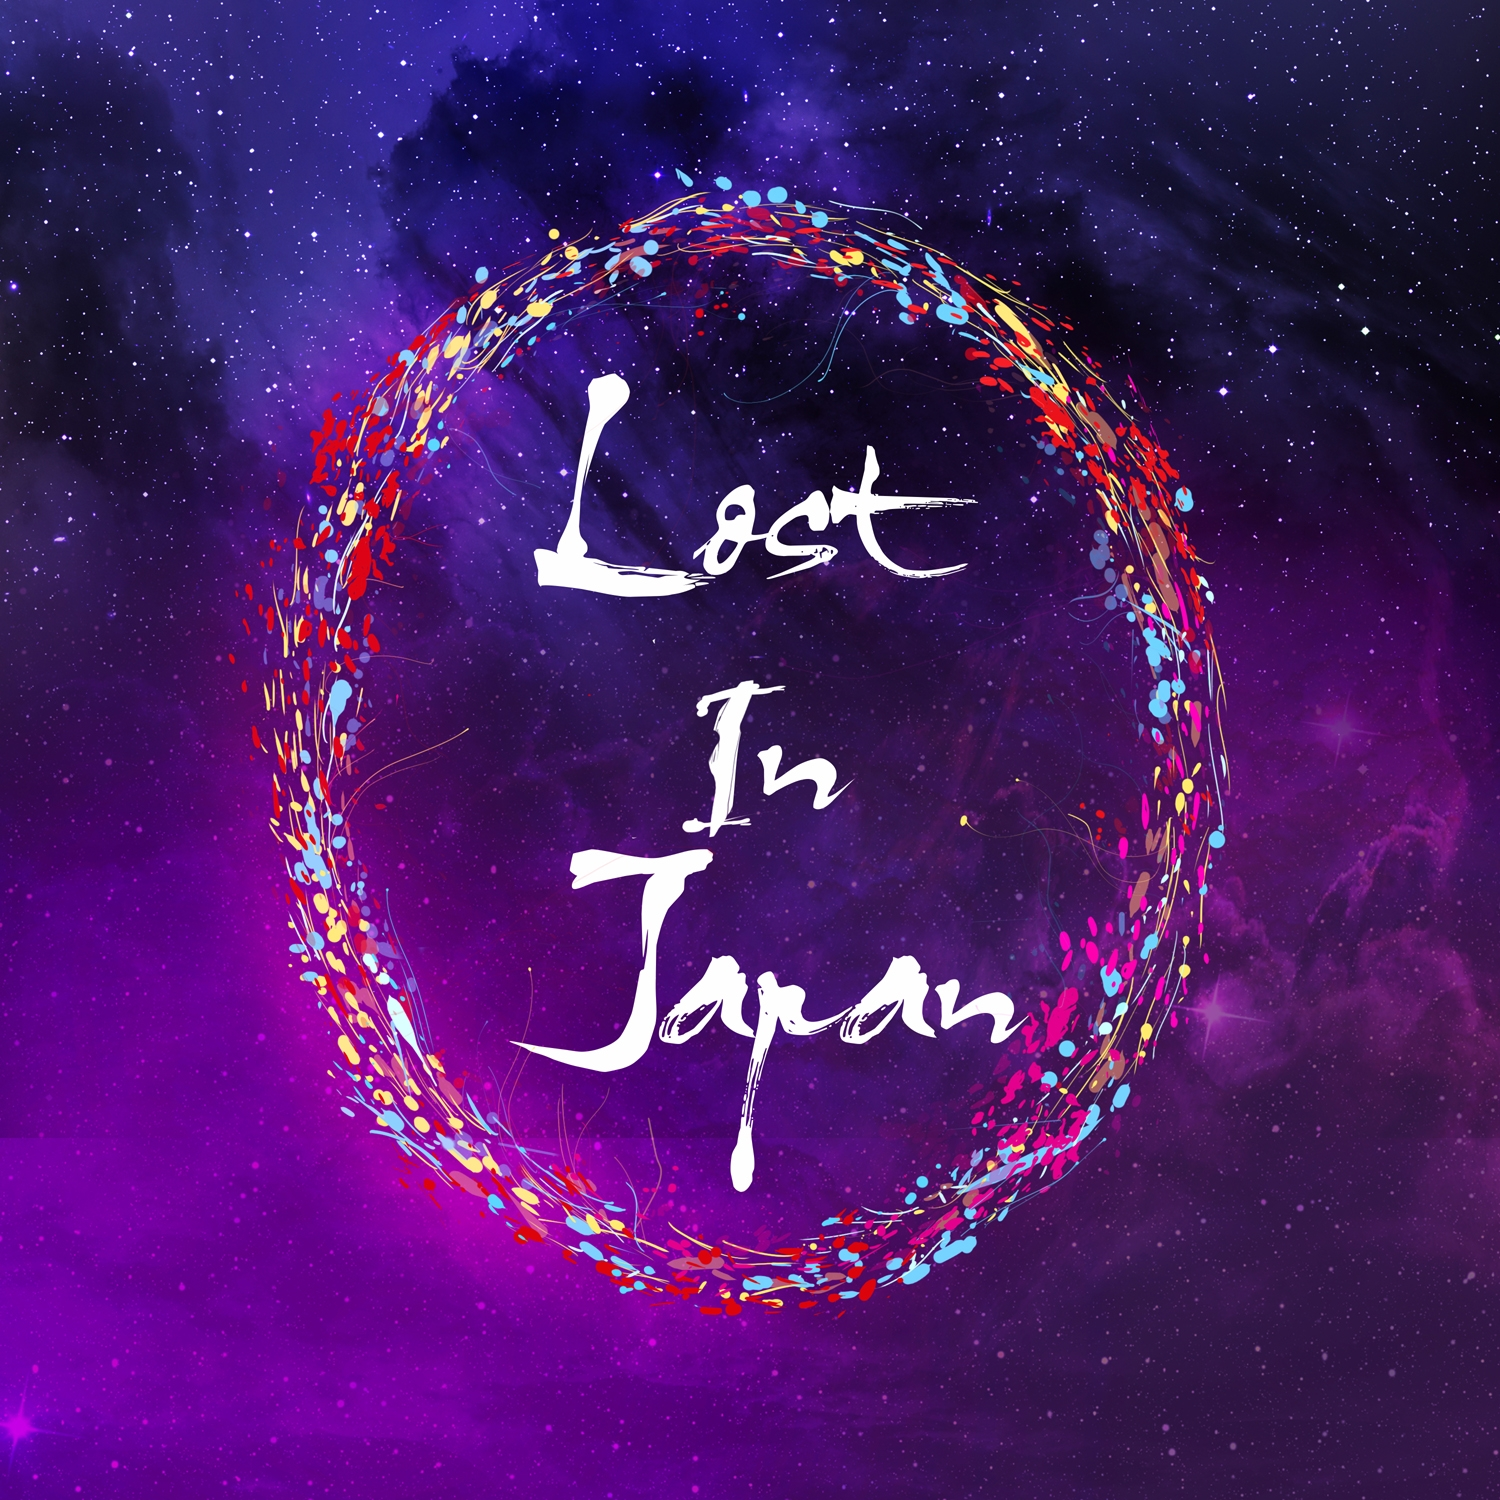 Lost in Japan's self-titled album is their first full-length.